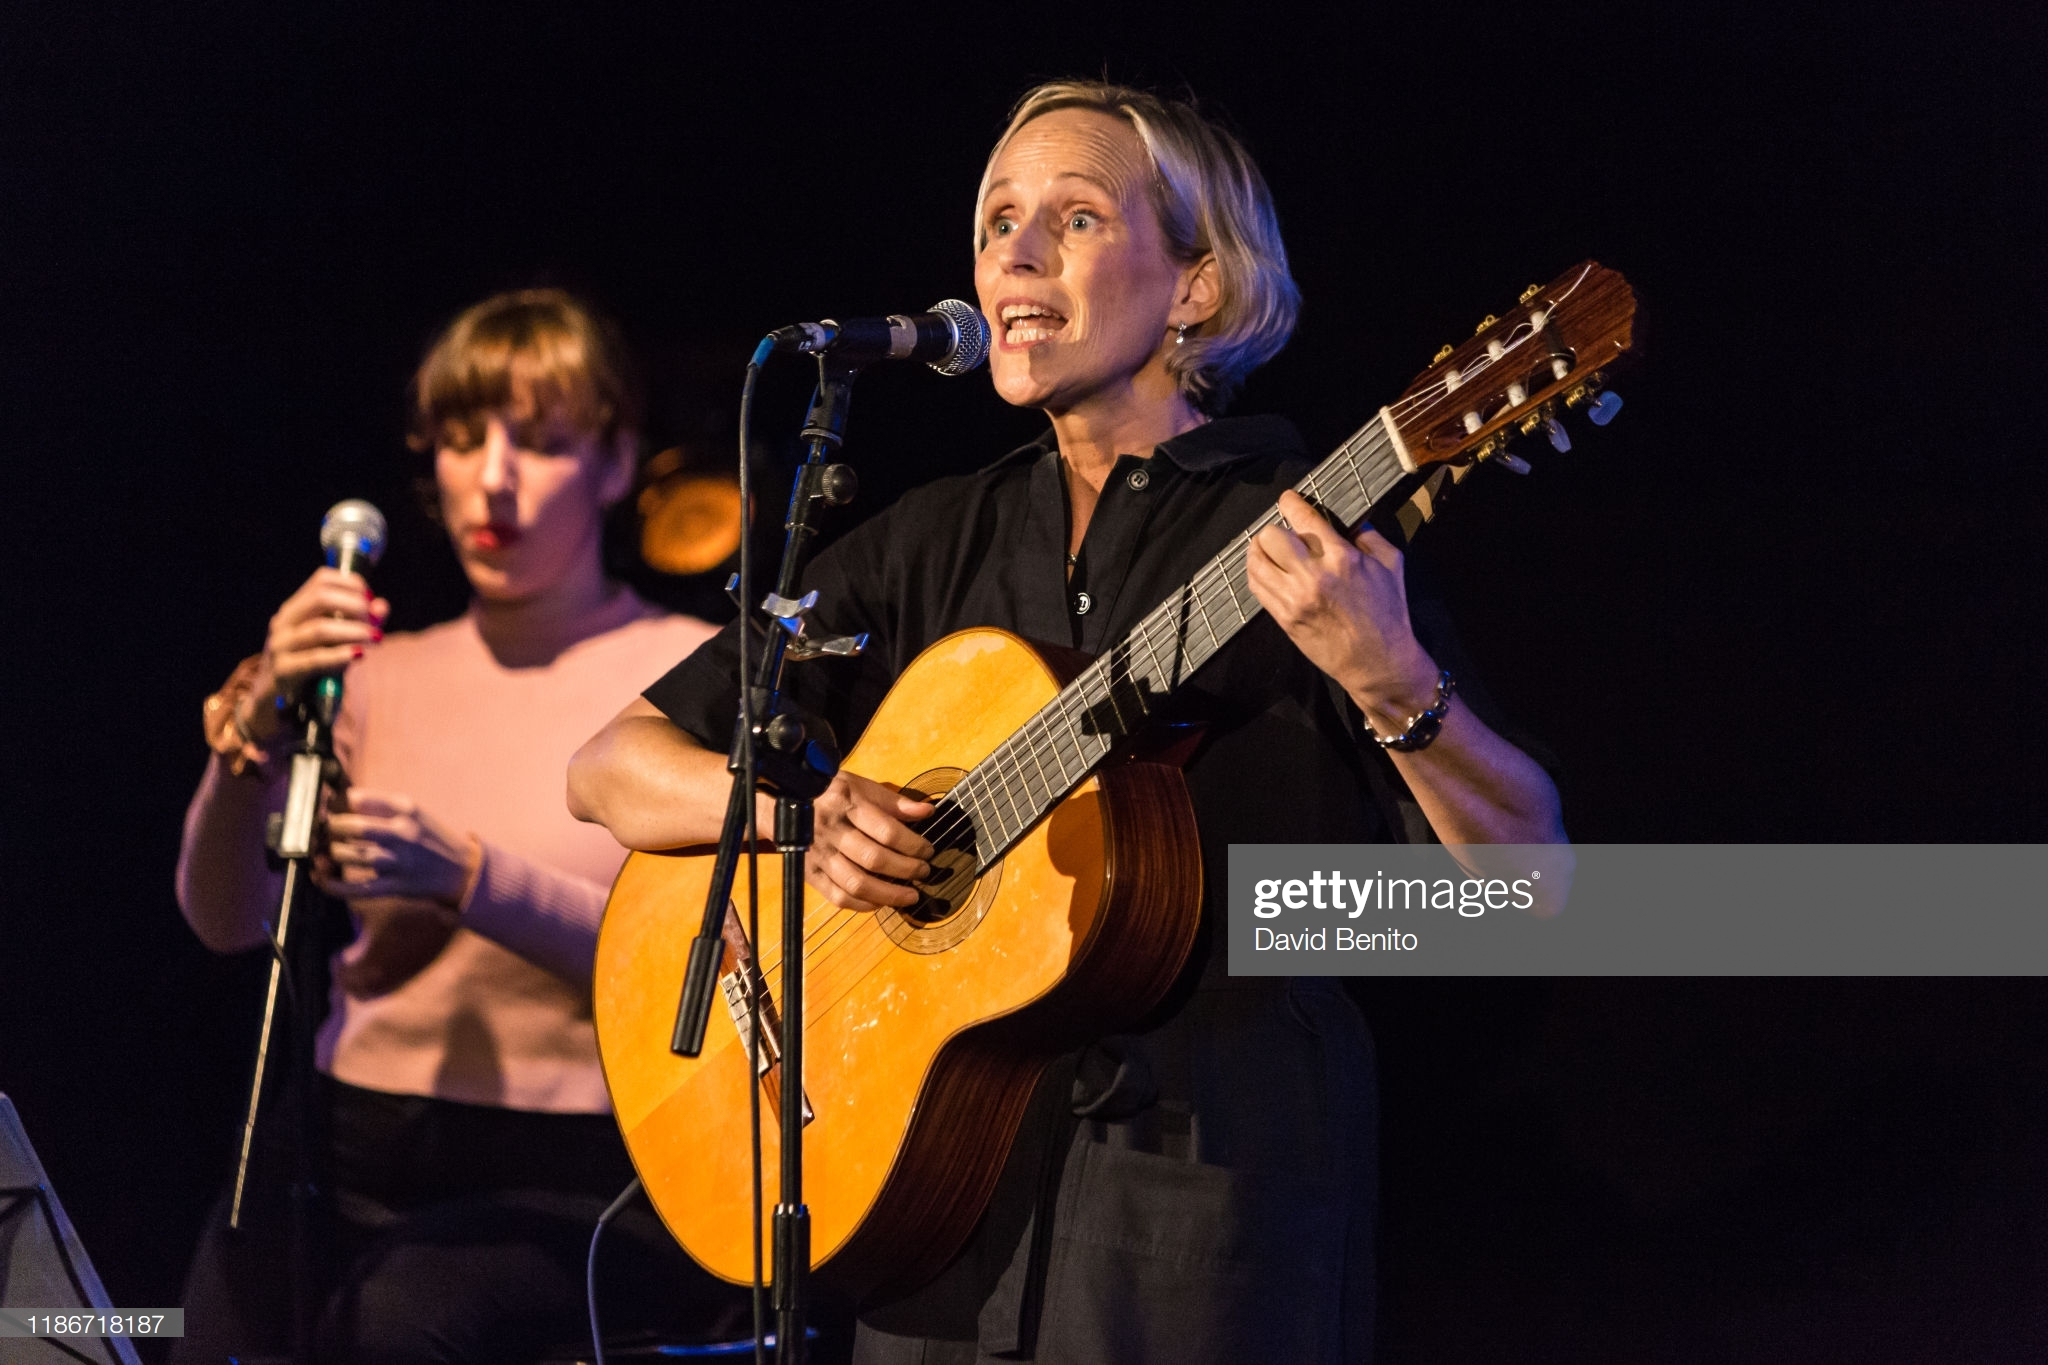 gettyimages-1186718187-2048x2048